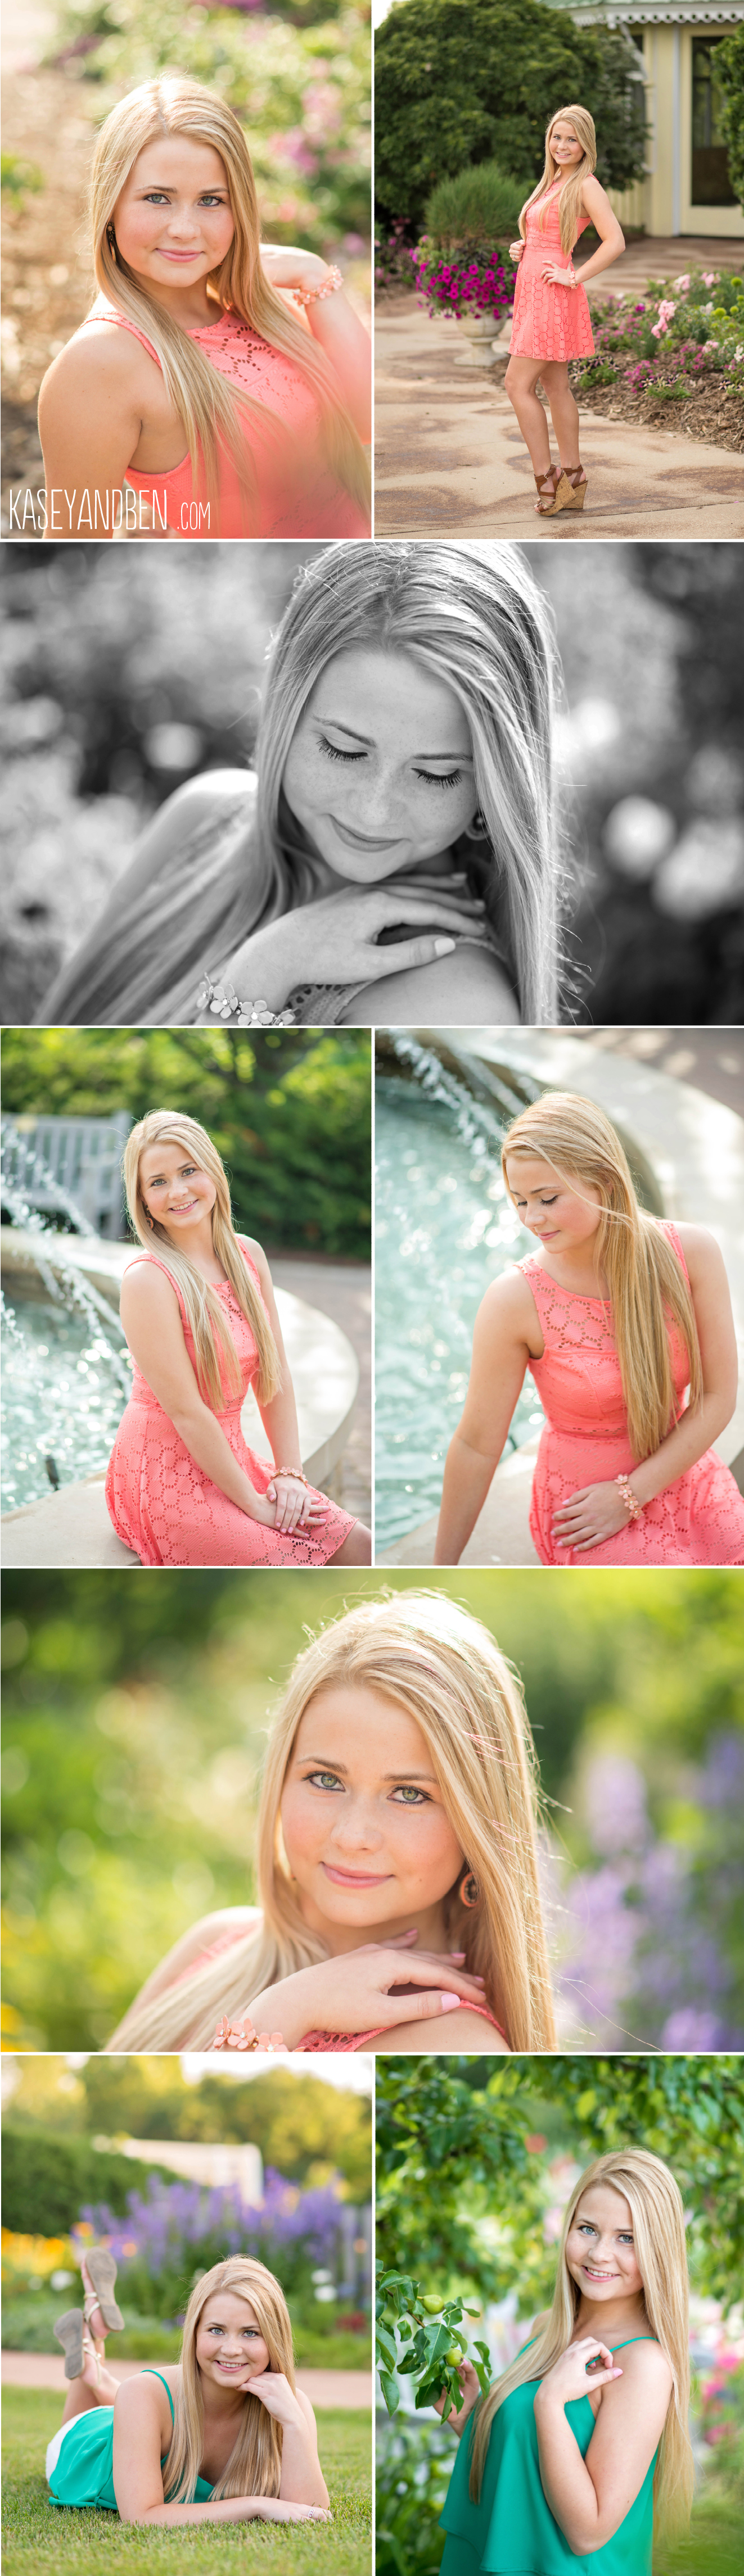 Green-Bay-Botanical-Gardens-Senior-Portraits-Pictures-Photos-Southern-Door-High-School-Outdoors